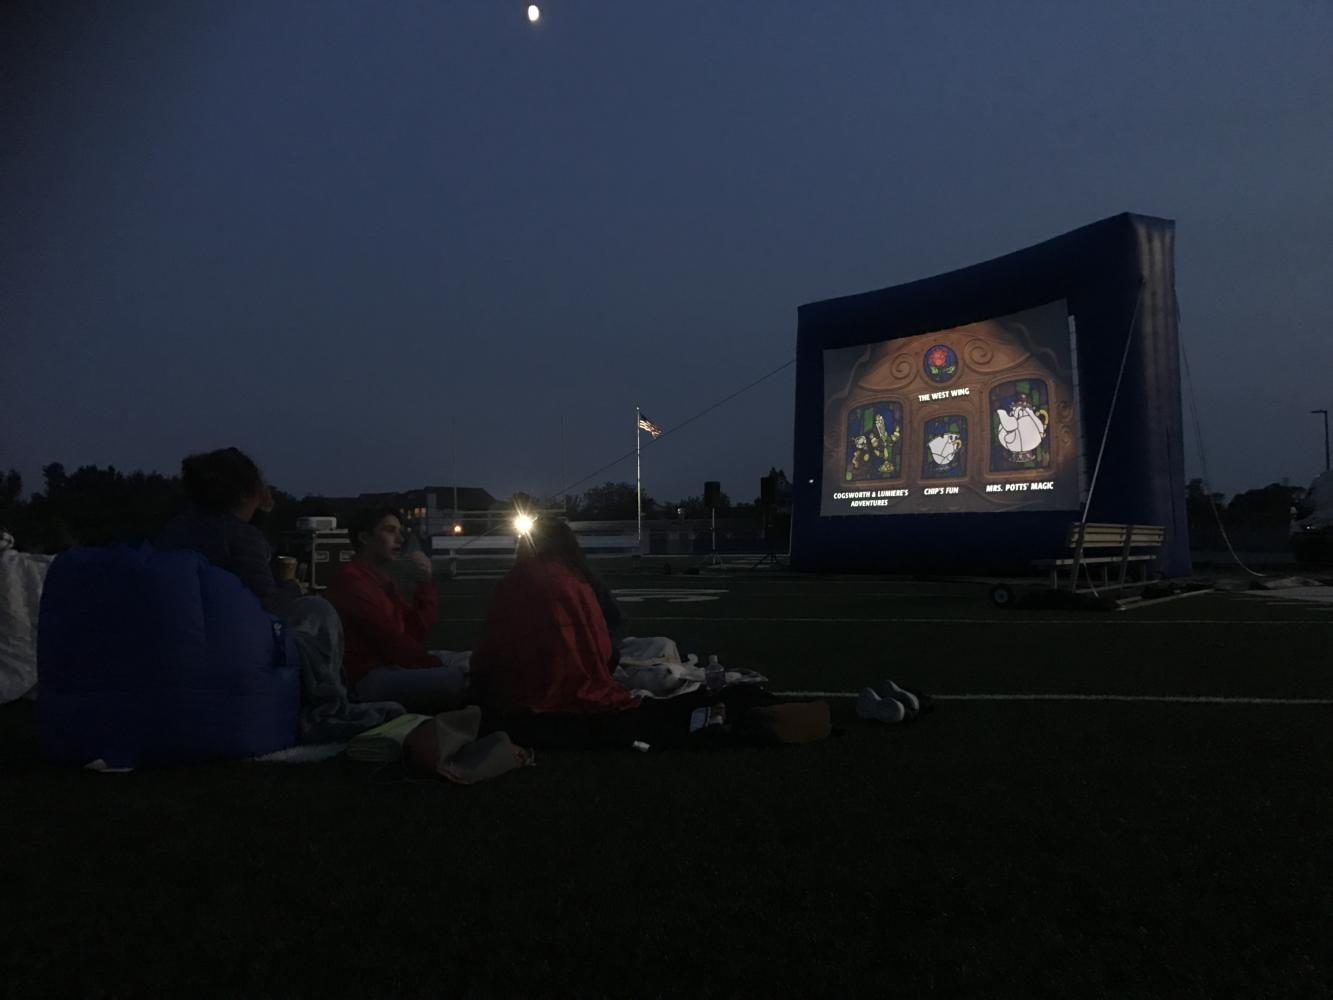 Onlookers+watch+as+Monsters+Inc+plays+on+the+big+screen.+Student+Council+held+a+showing+of+the+movie+on+the+football+field+for+the+annual+movie+night.